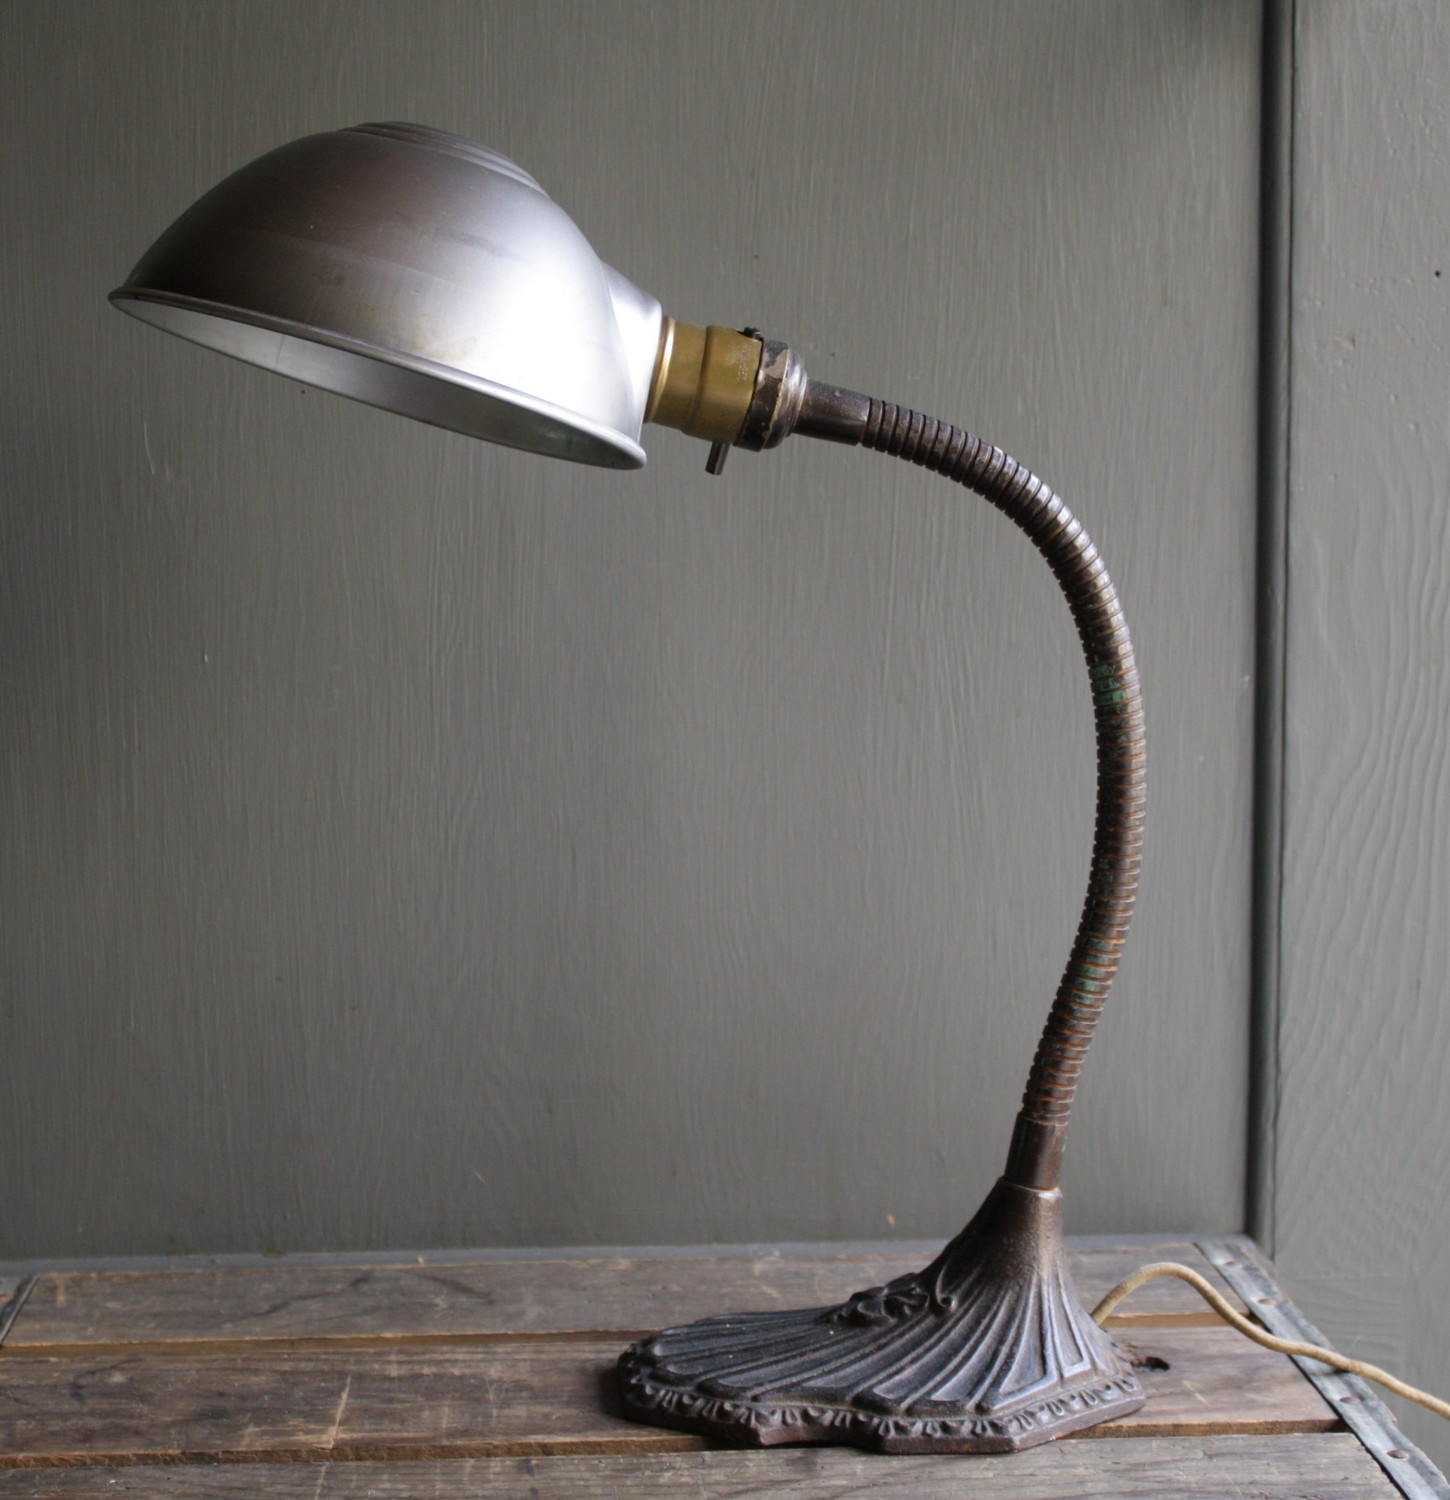 antique lighting for sale uk. pricing and design - to 10 old desk lamps for bedrooms studyrooms warisan lighting -. antique sale uk l